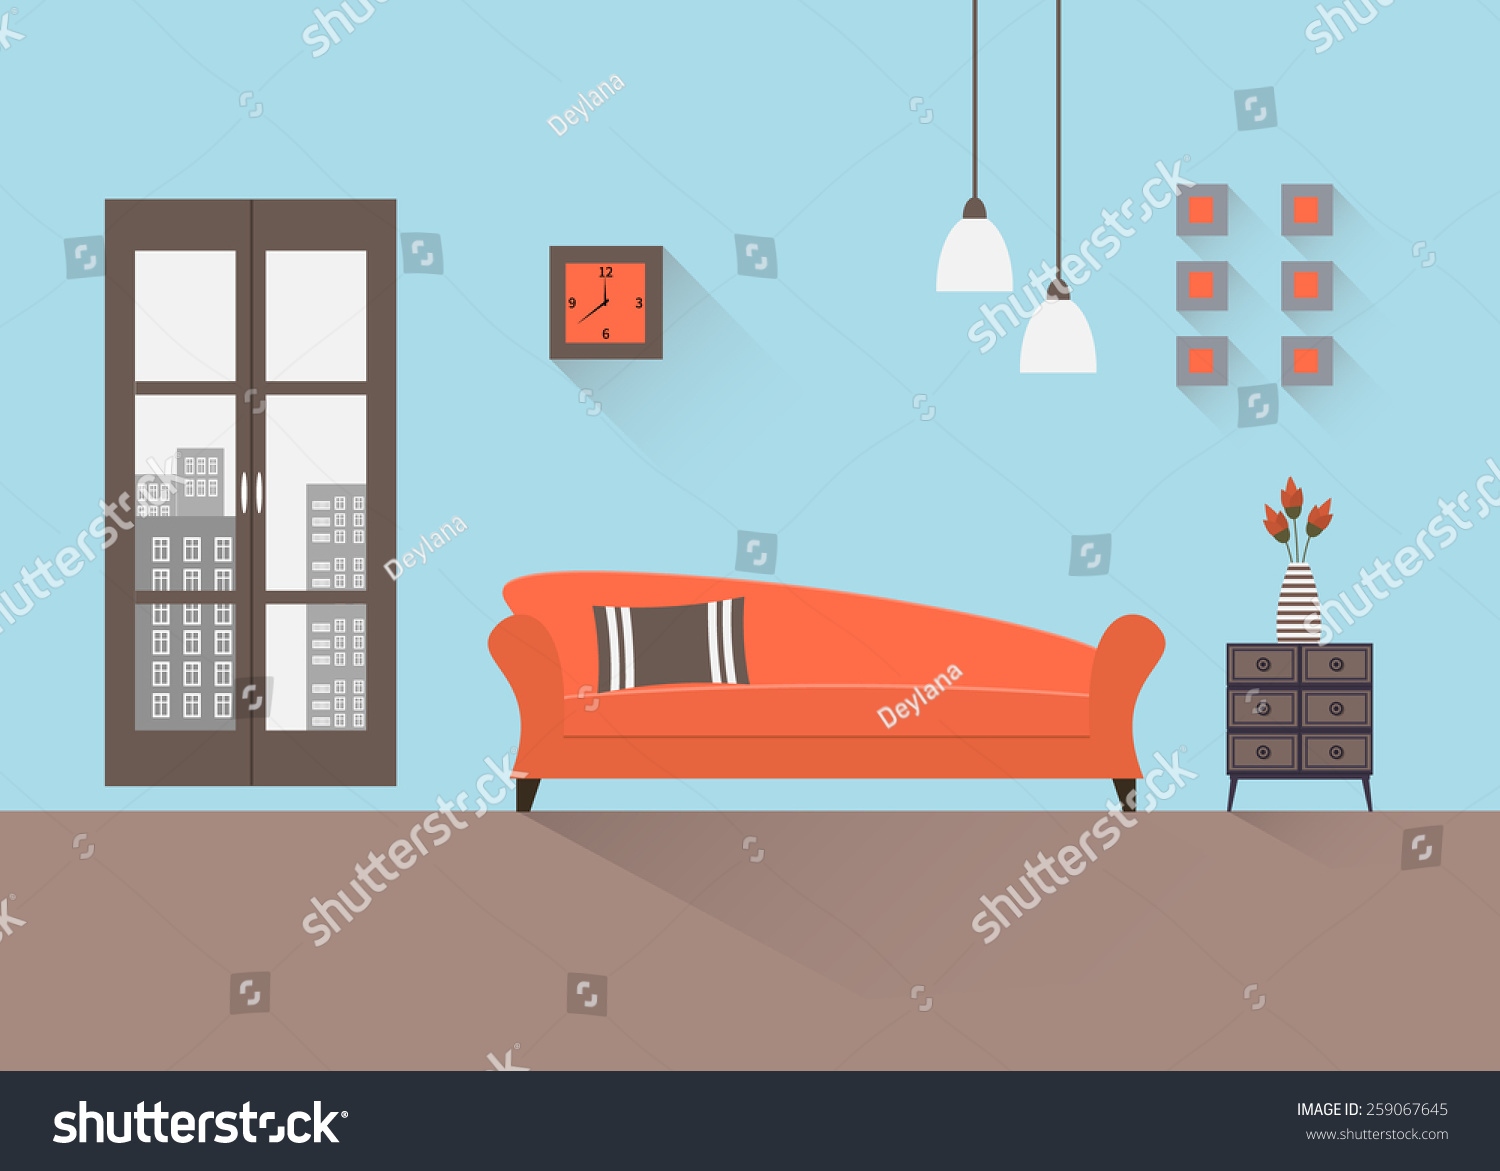 Home interior interior design living room stock vector for Room design vector